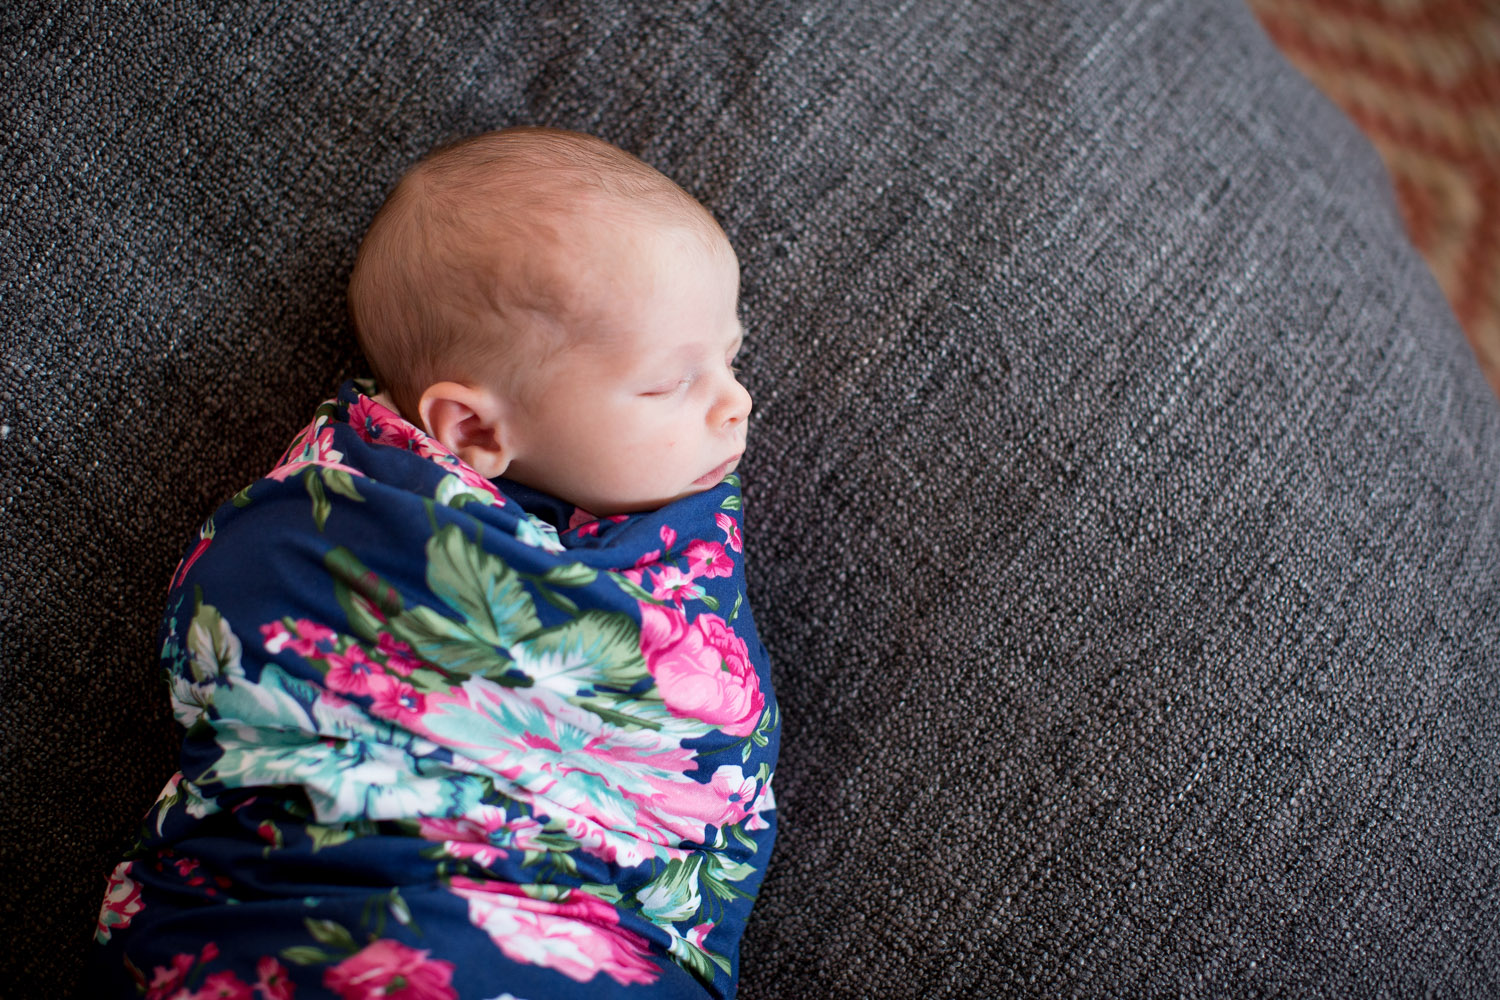 04-in-home-lifestyle-minnesota-newborn-photographer-navy-pink-floral-wrap-mahonen-photography.jpg